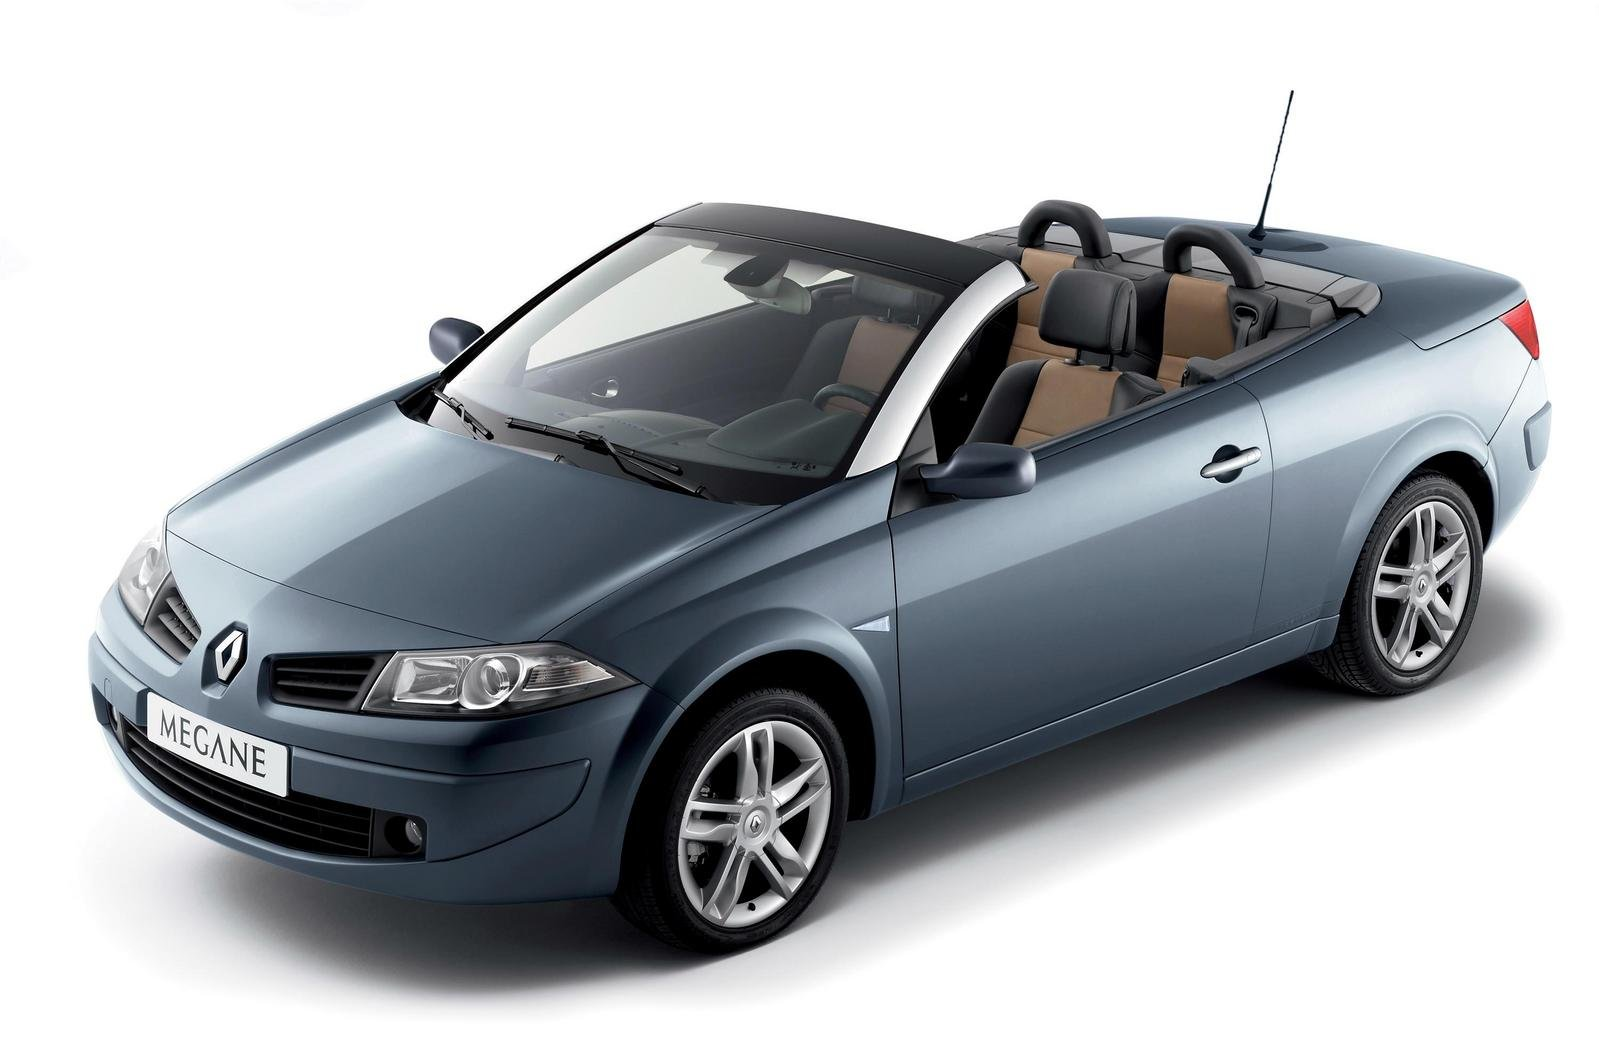 2006 renault megane coupe cabriolet exception review top speed. Black Bedroom Furniture Sets. Home Design Ideas